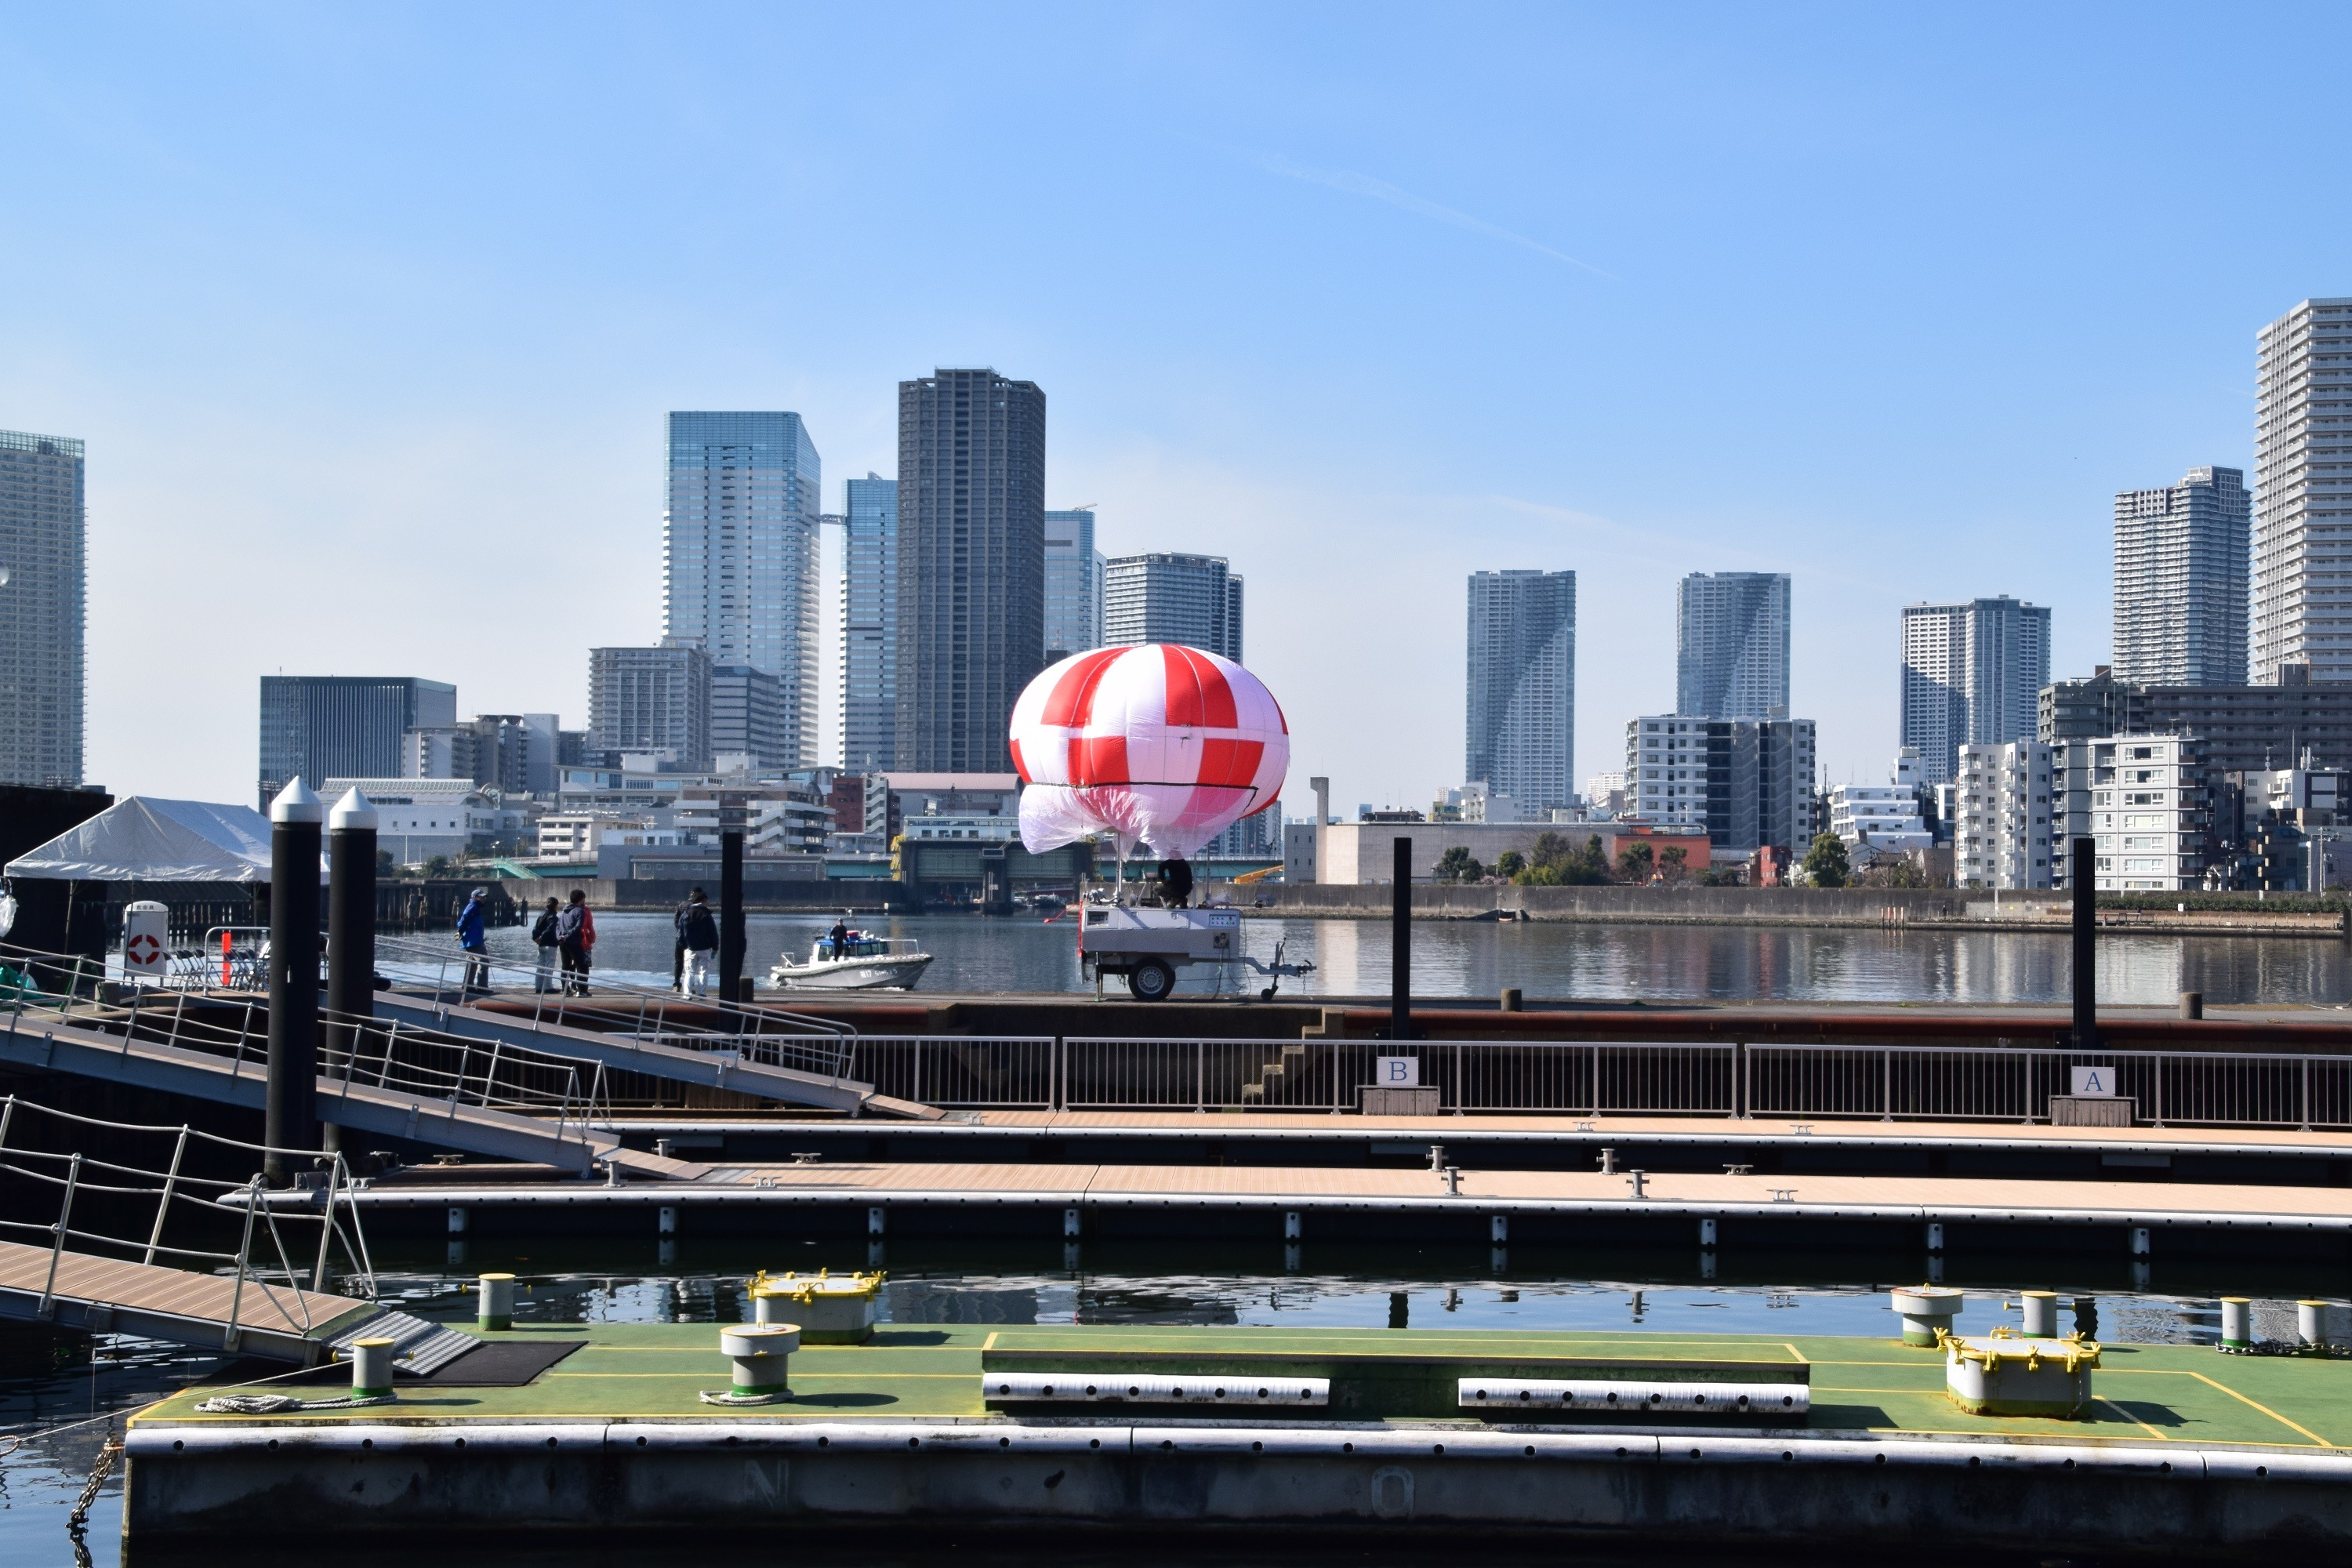 SEECAT 2017: RT to present the Skystar 180 aerostat, which was successfully deployed in Japan during the Tokyo marathon